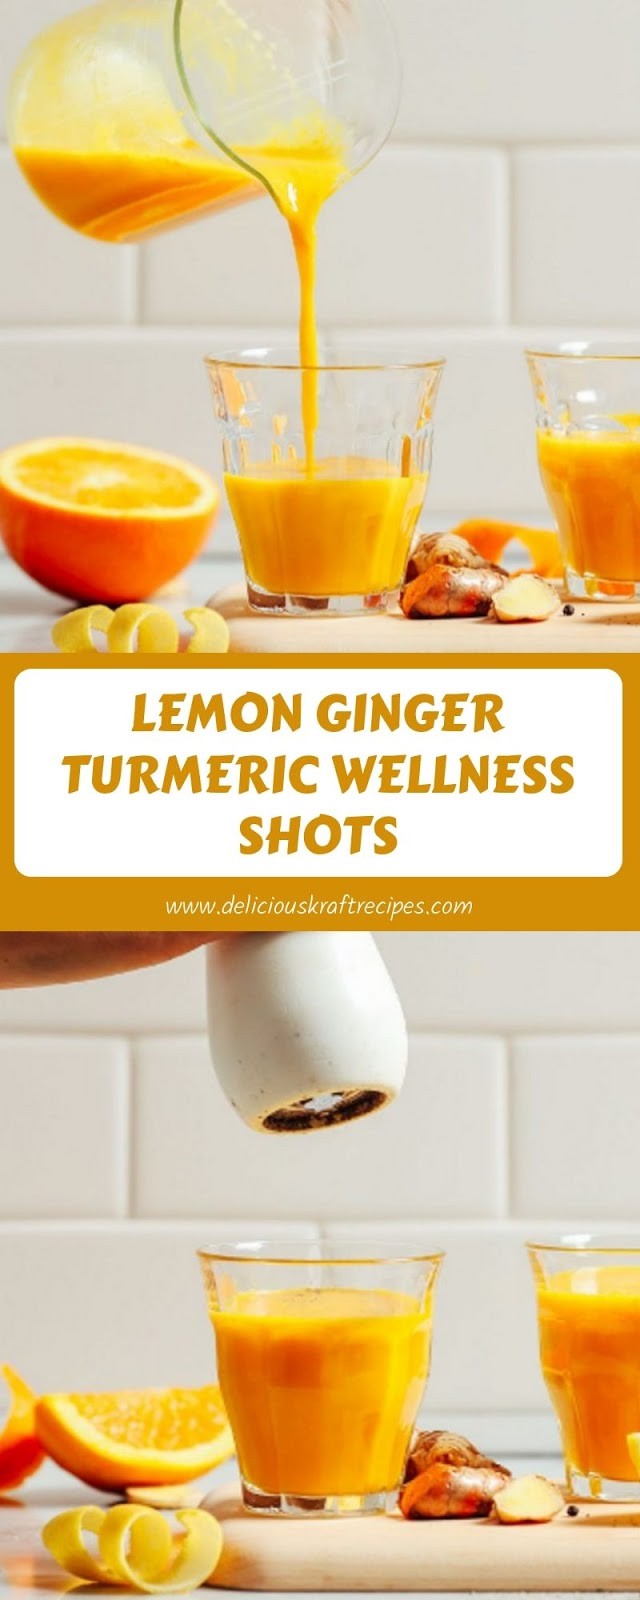 LEMON GINGER TURMERIC WELLNESS SHOTS